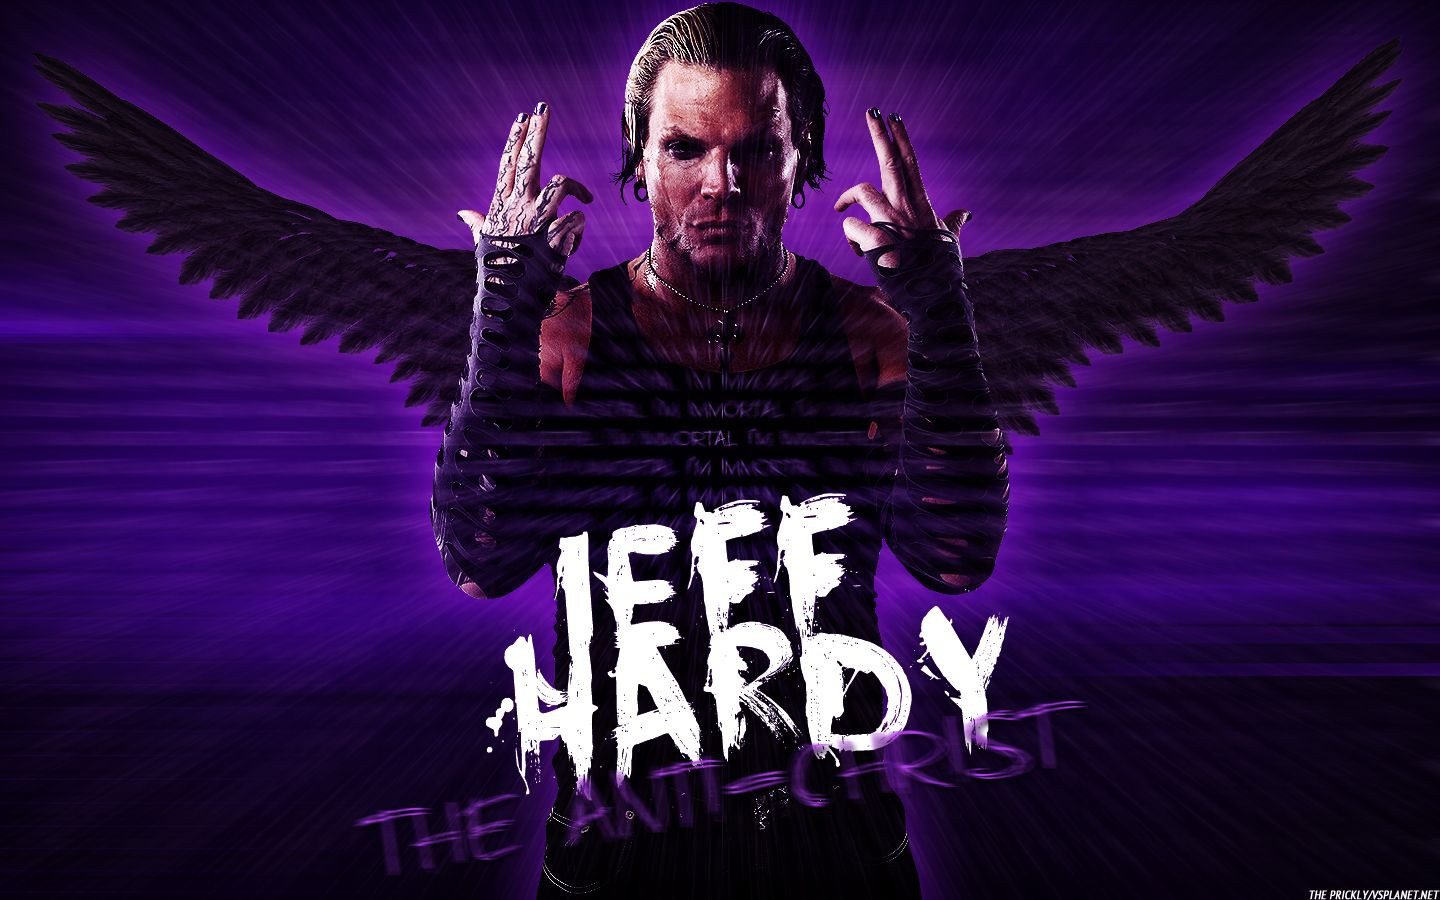 wwe superstar jeff hardy anti christ hd 3d wallpaper